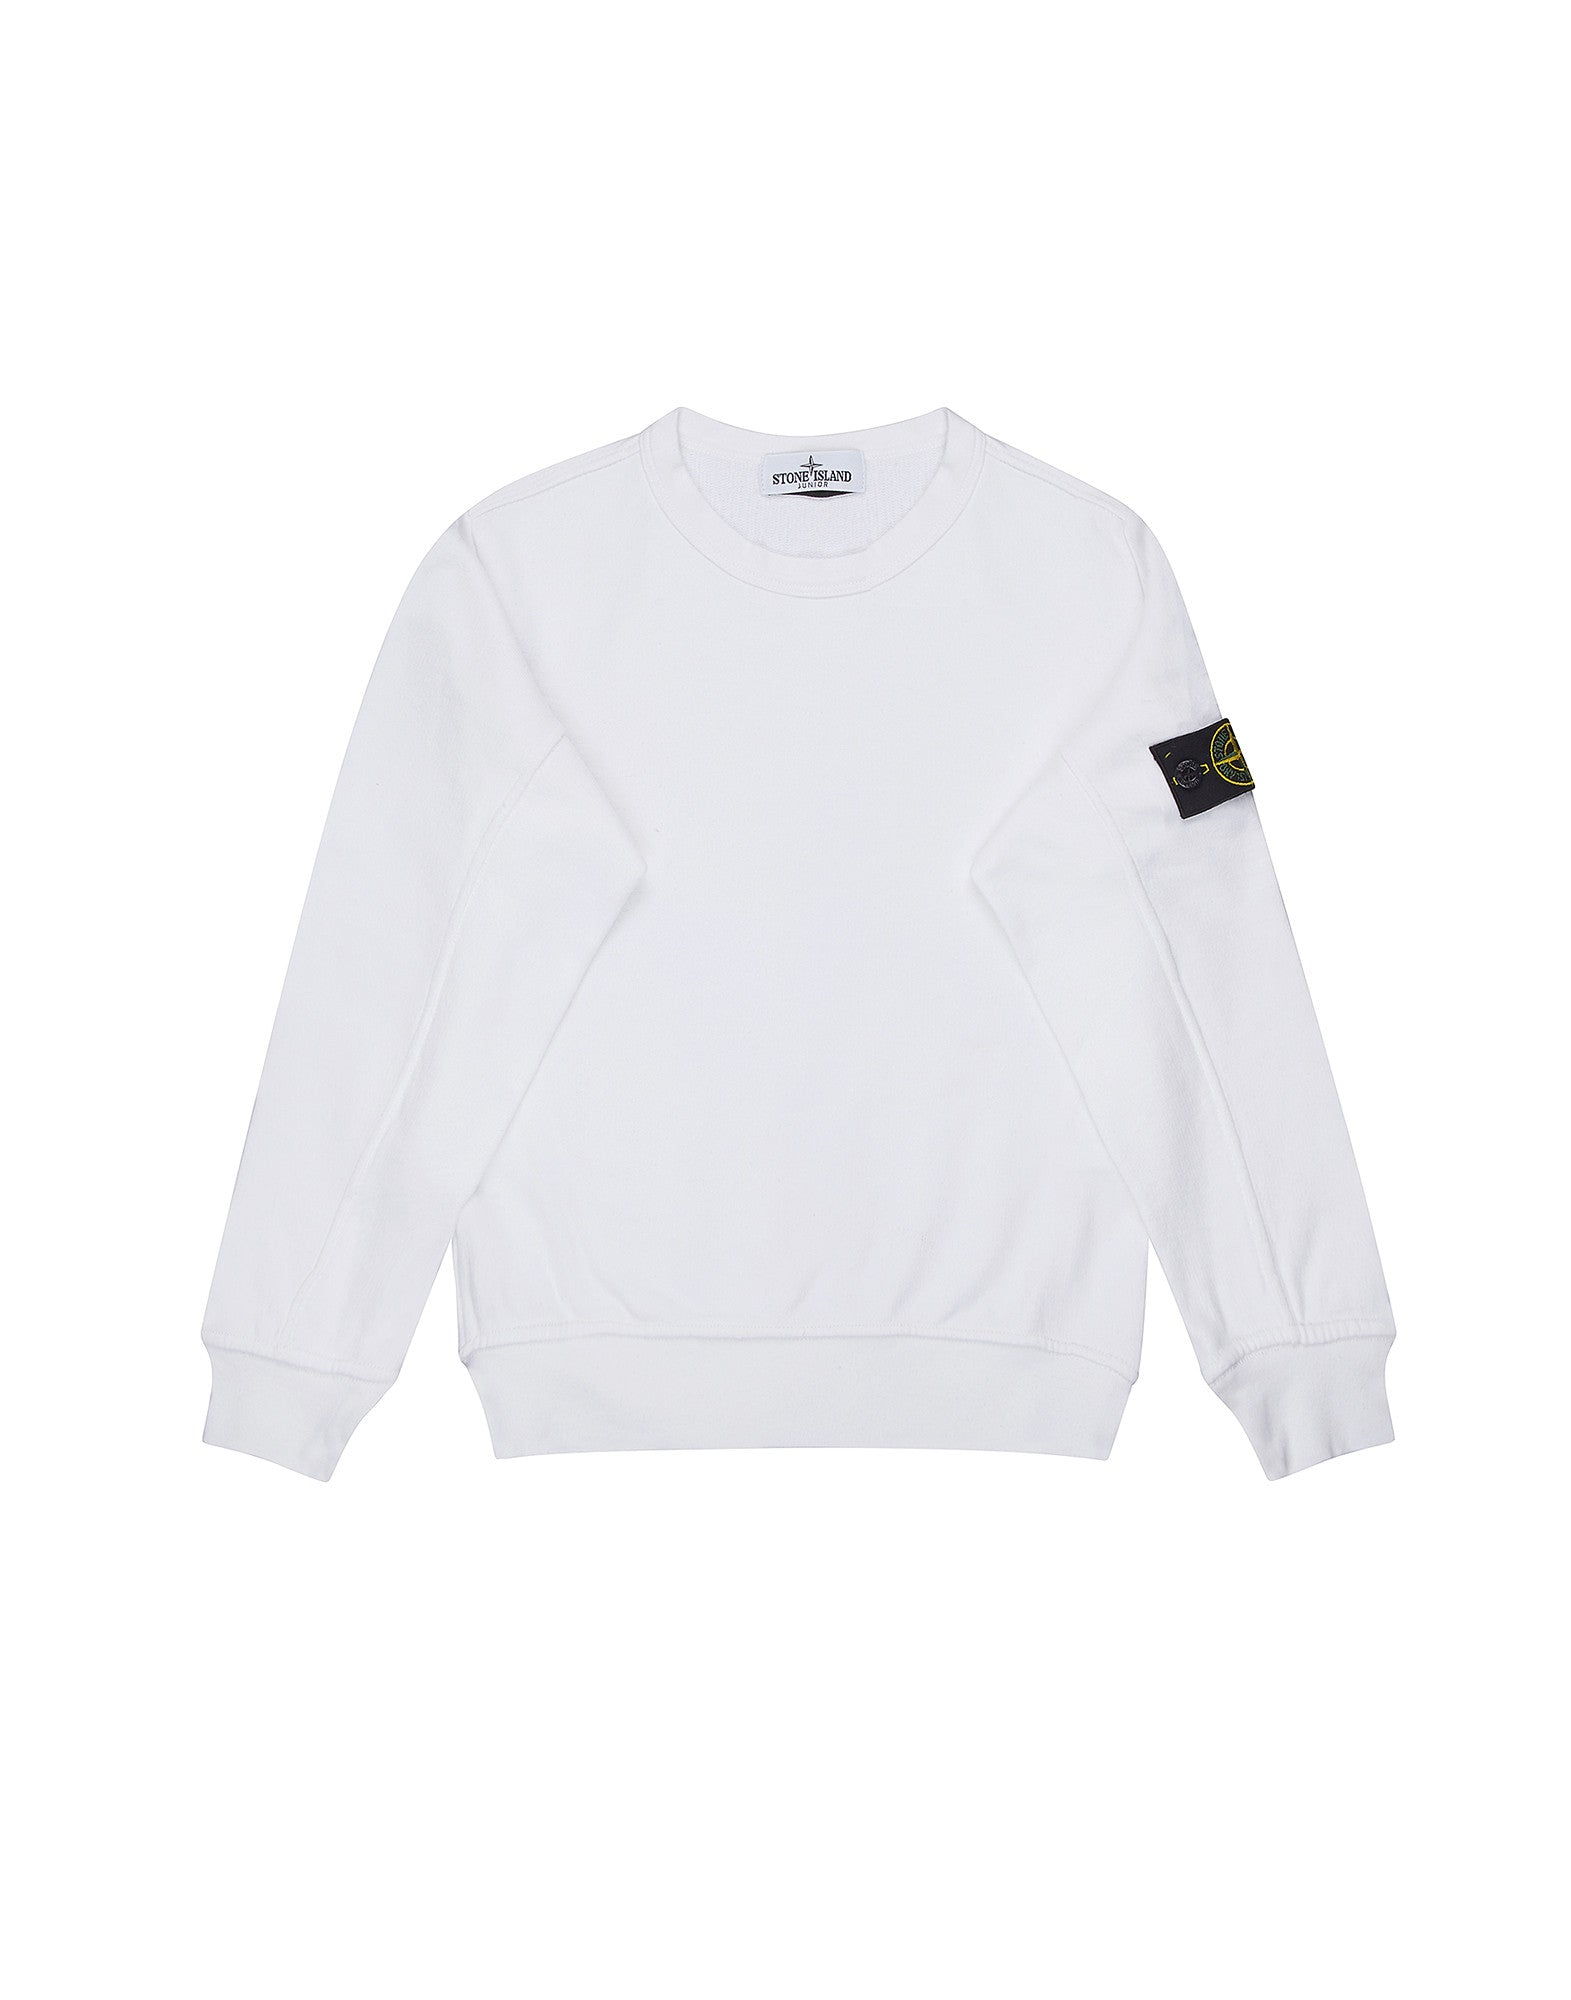 61240 Crew Neck Sweatshirt in White